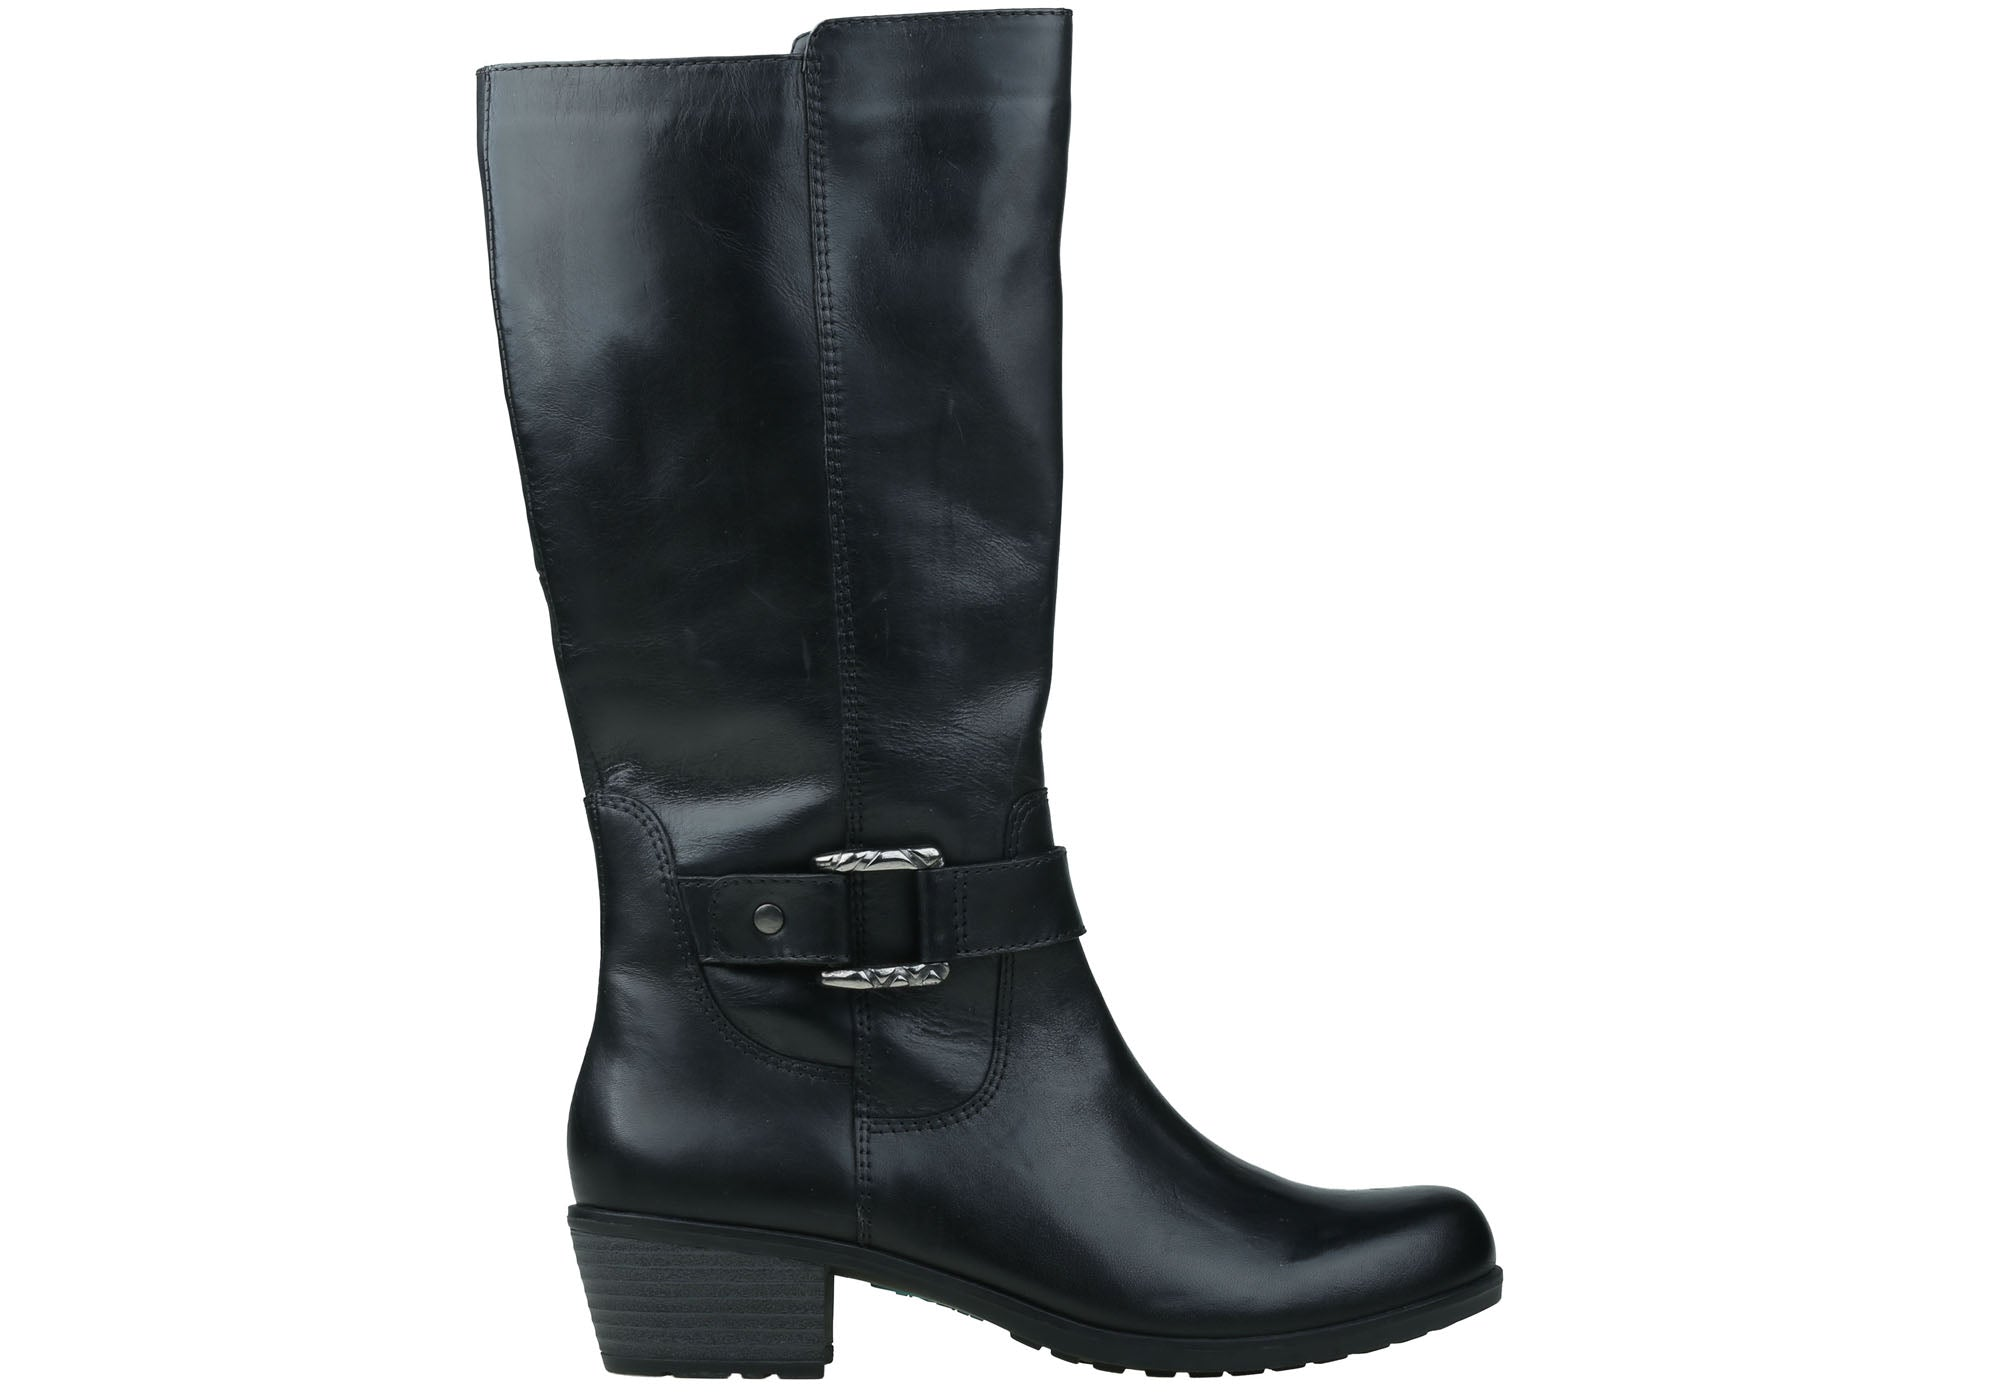 comforter comfortable us the balenciaga knee looks high knife boots a woman over shoes f s women